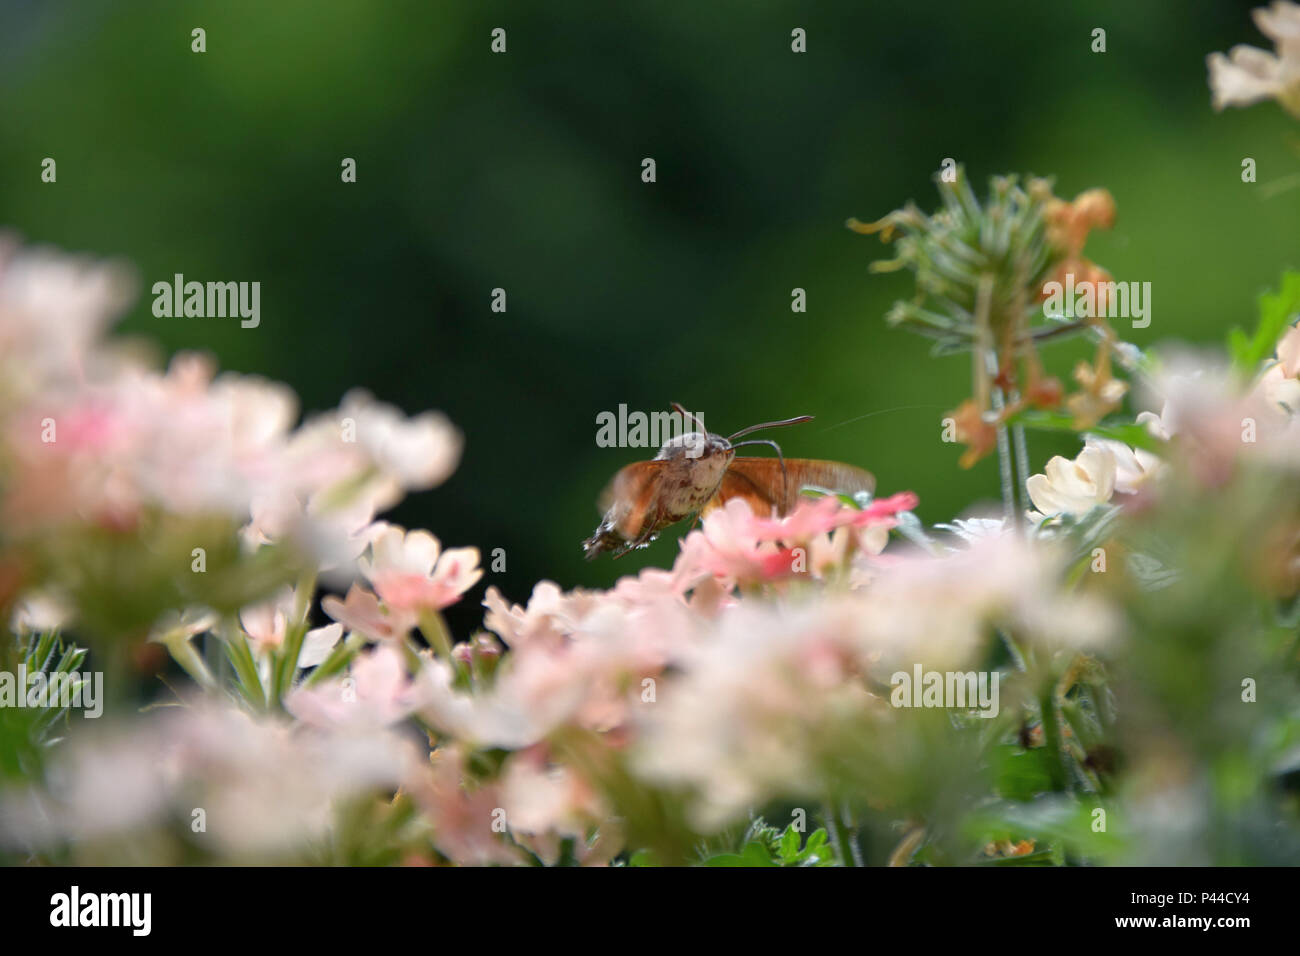 macroglossum stellatarum hovering over pink flowers in early summer, hummingbird hawk-moth sucking nectar from a flower, bee-moth sipping nectar - Stock Image